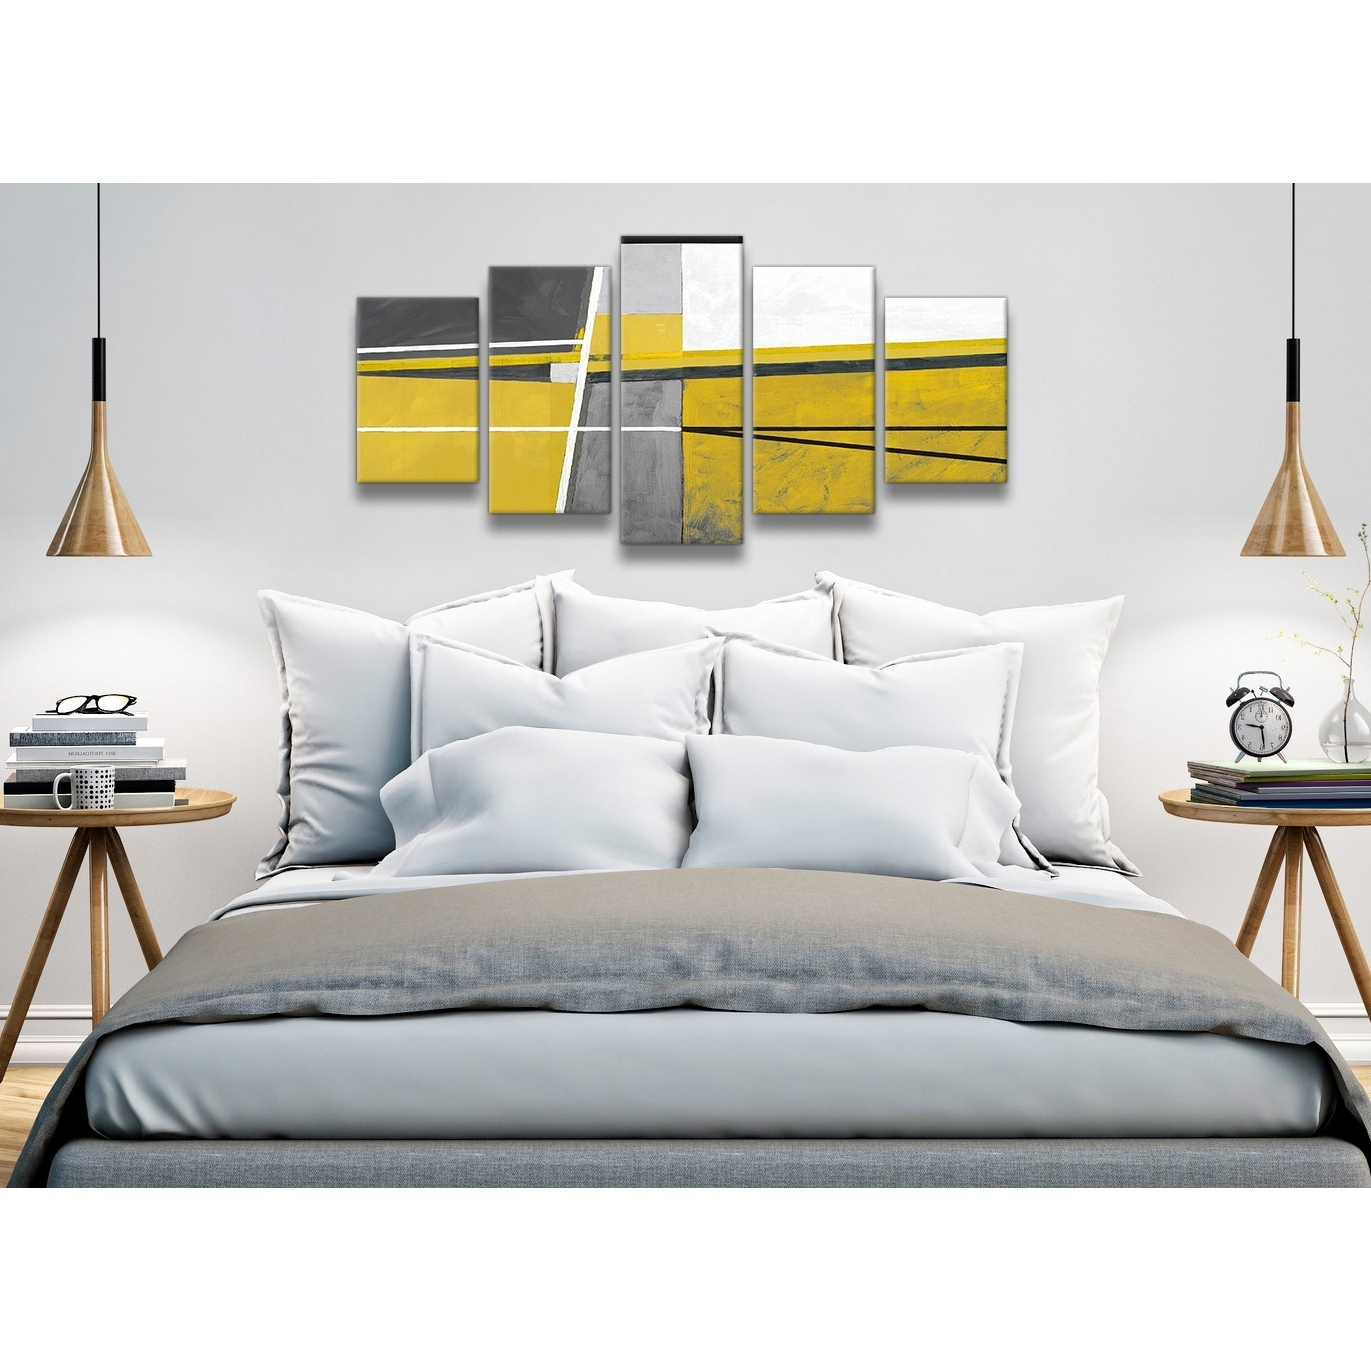 Wall Art For Bedroom Regarding Widely Used 5 Panel Mustard Yellow Grey Painting Abstract Bedroom Canvas (View 14 of 15)